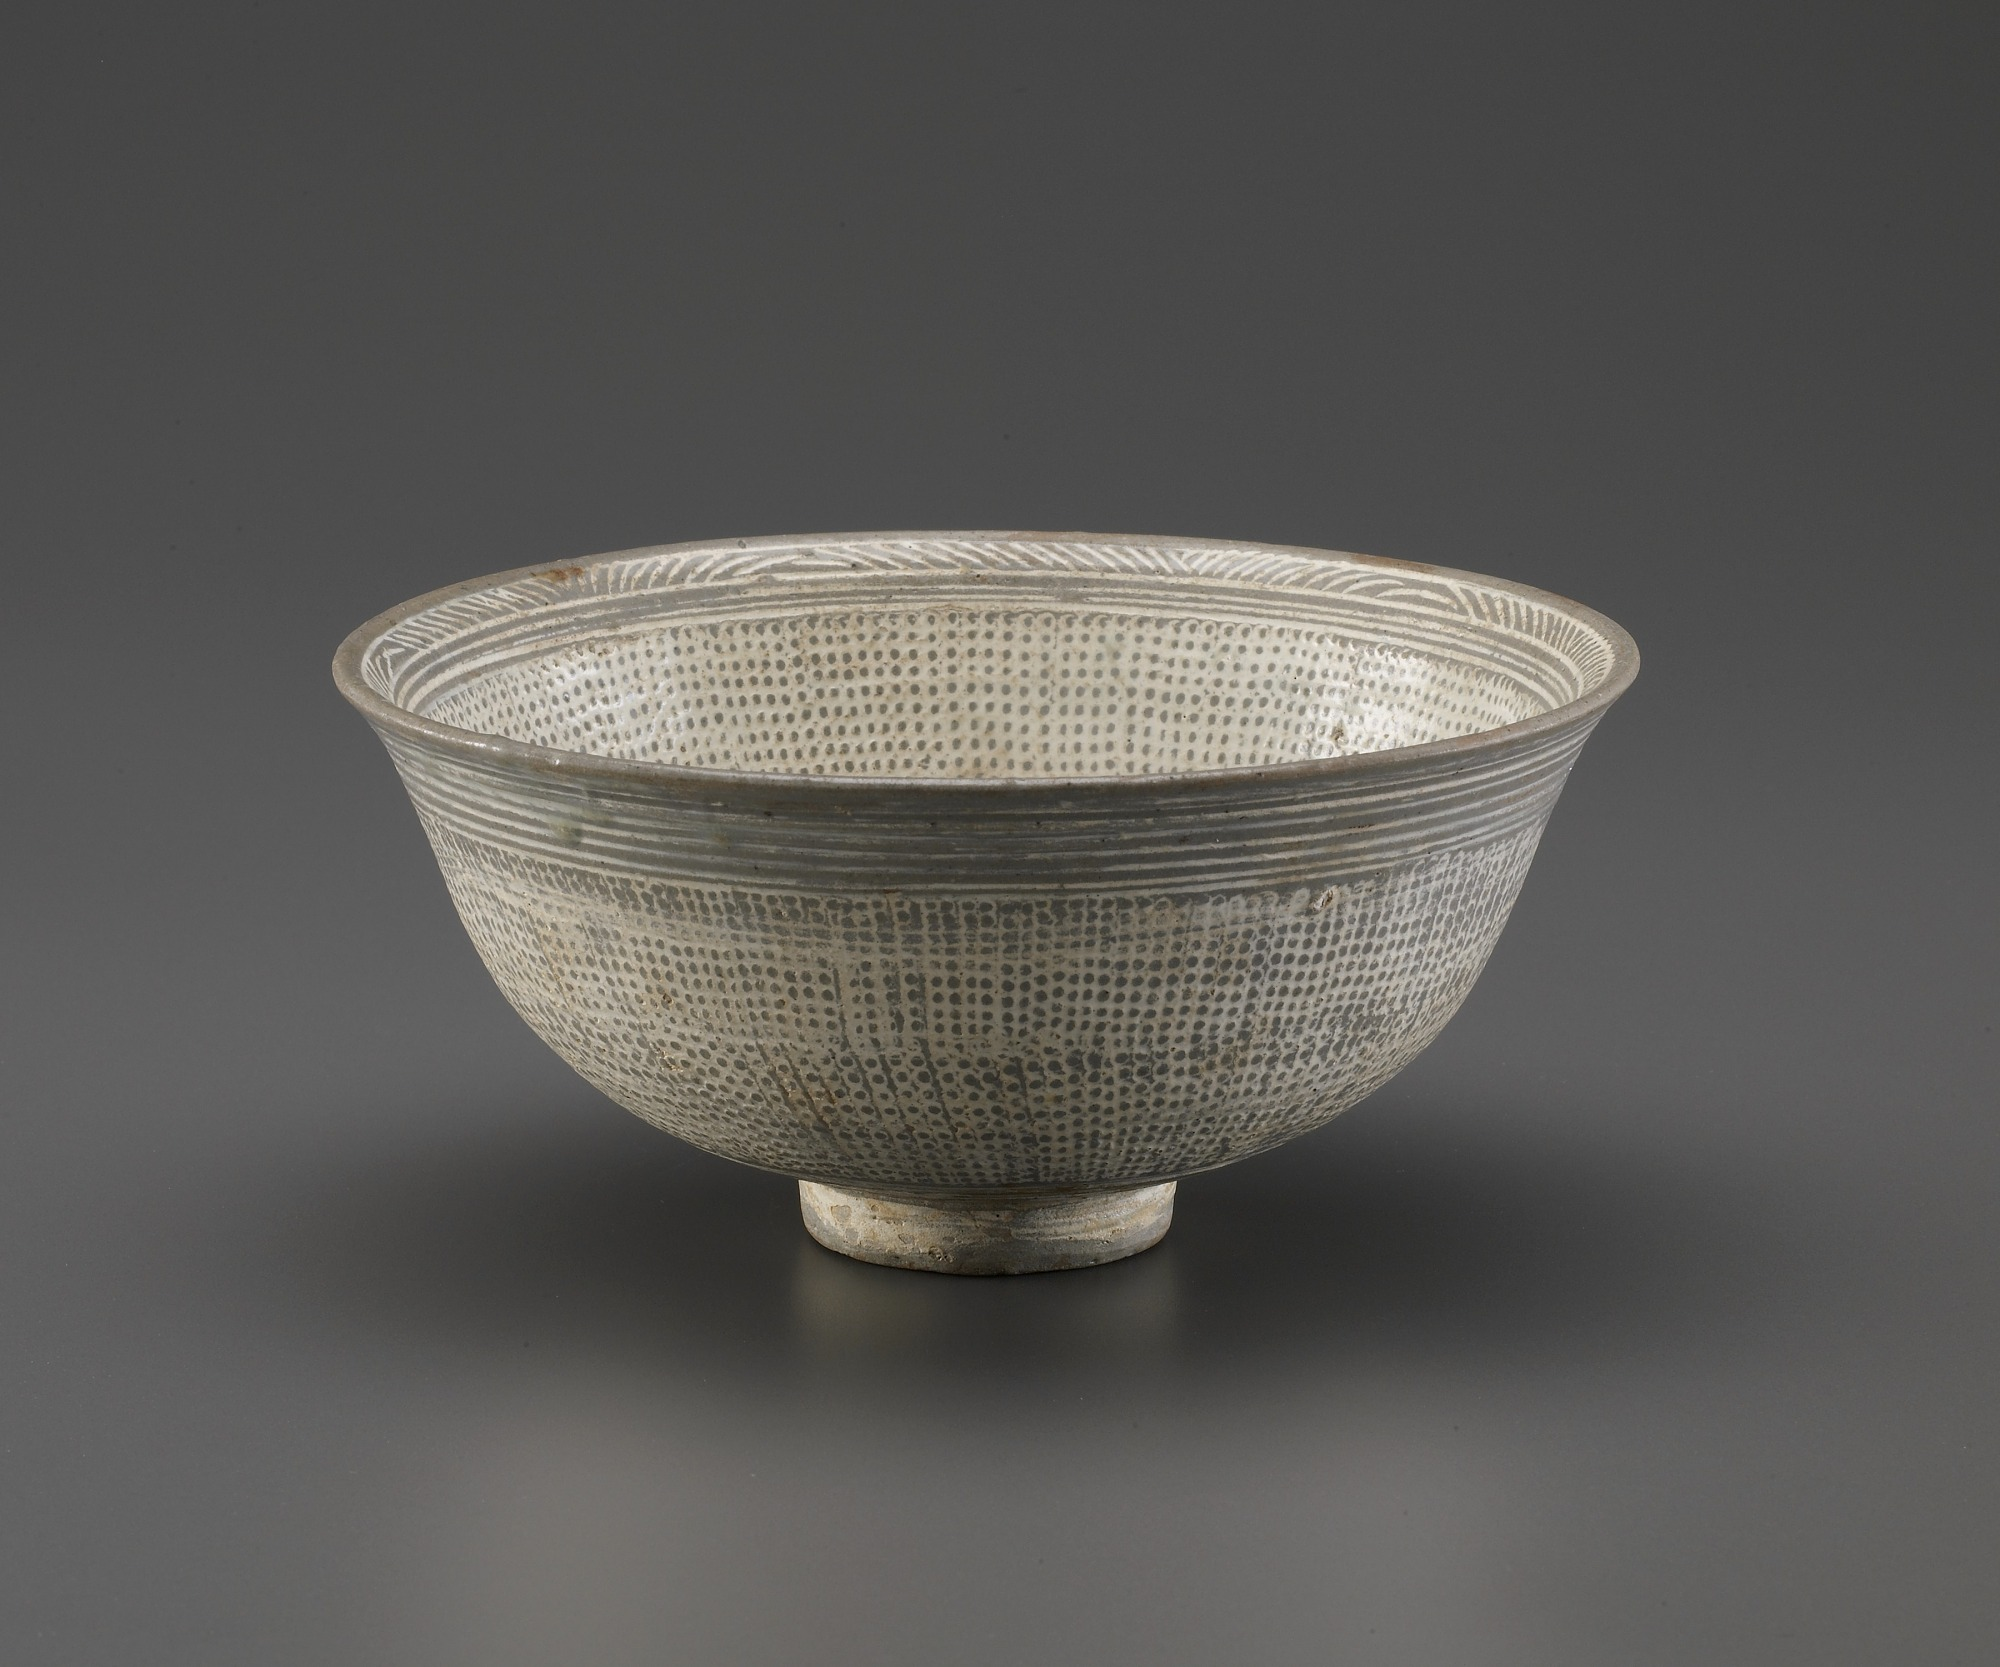 Bowl with stamped and incised decoration, profile